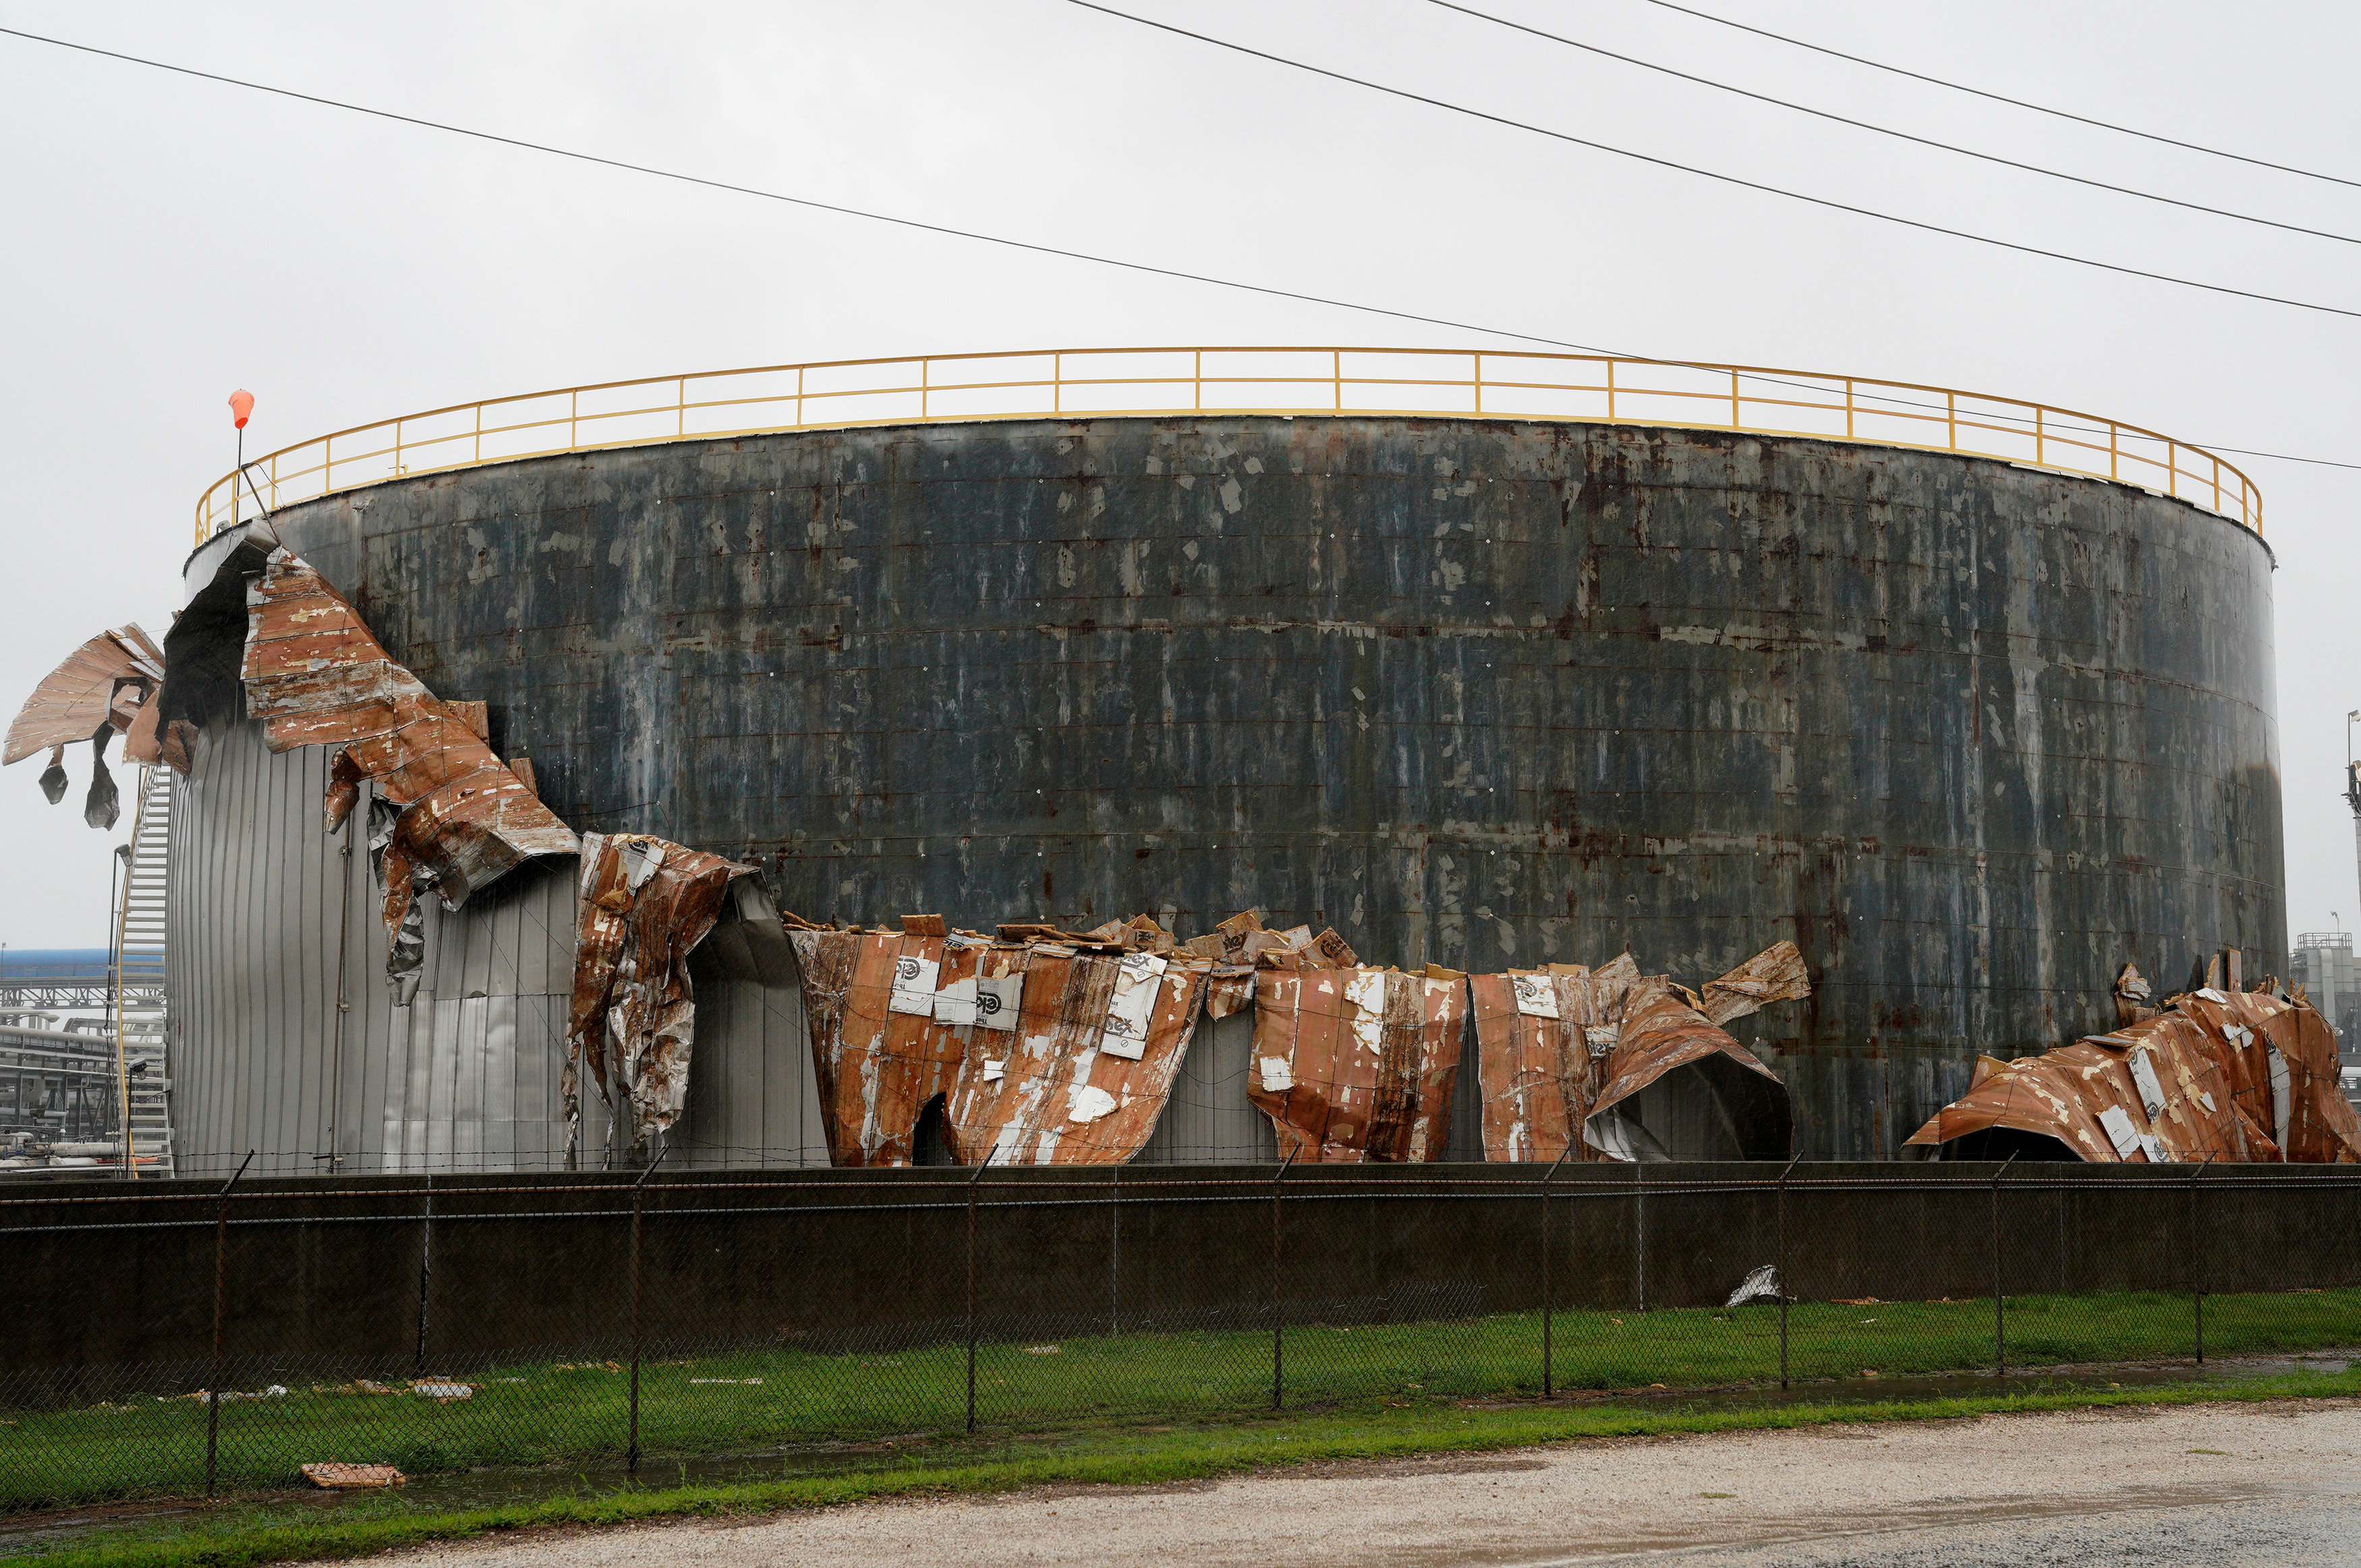 An oil tank damaged by Hurricane Harvey is seen near Seadrift, Texas, August 26, 2017